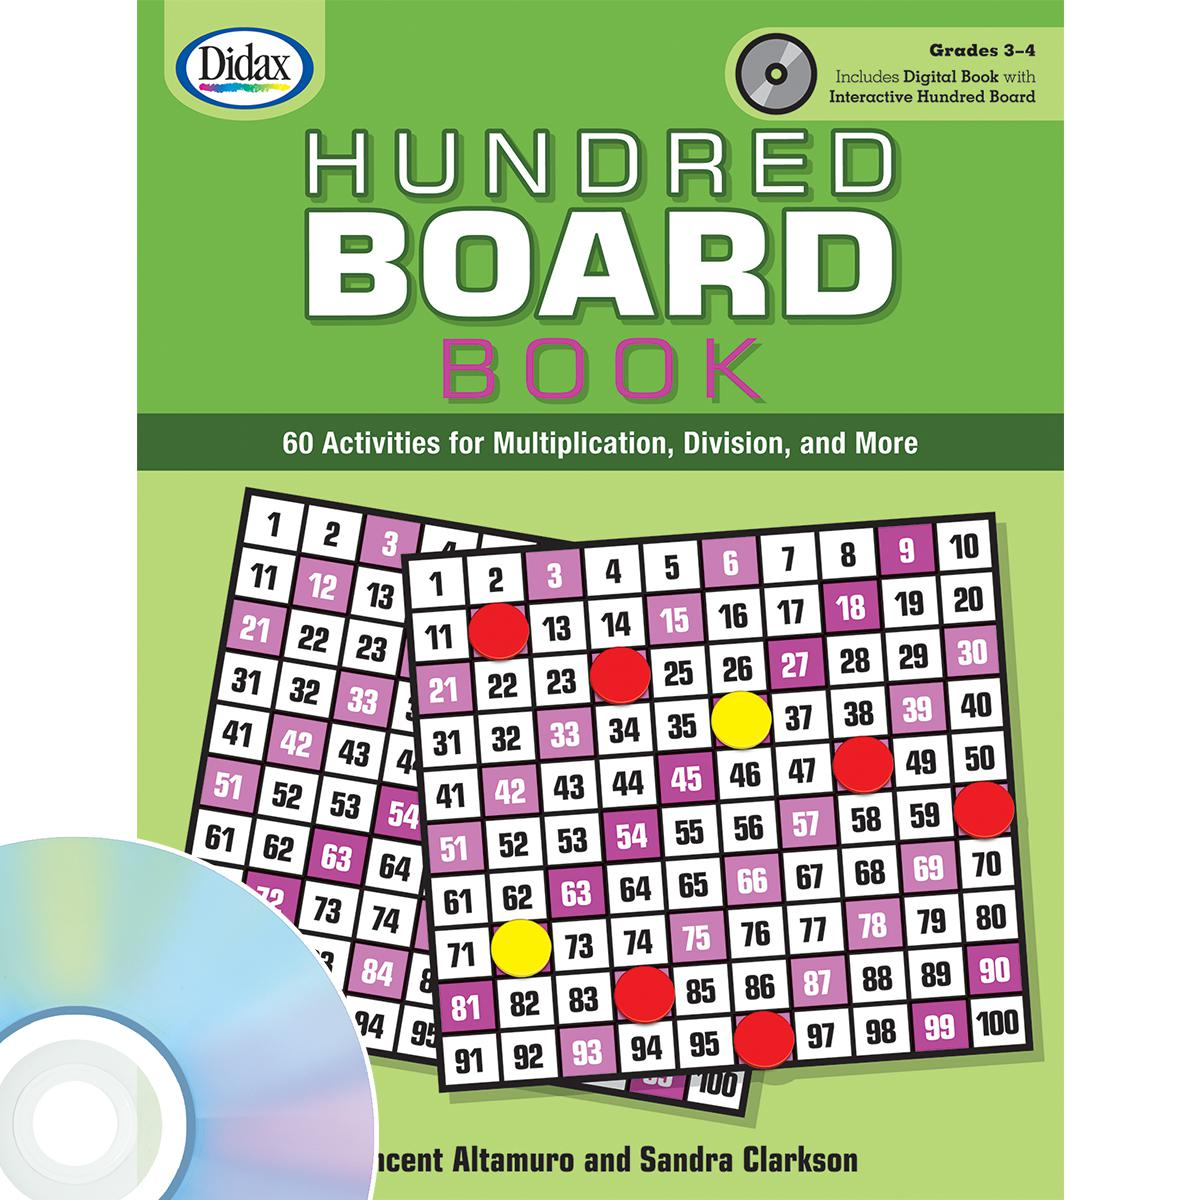 Hundred Board Book Grades 3-4